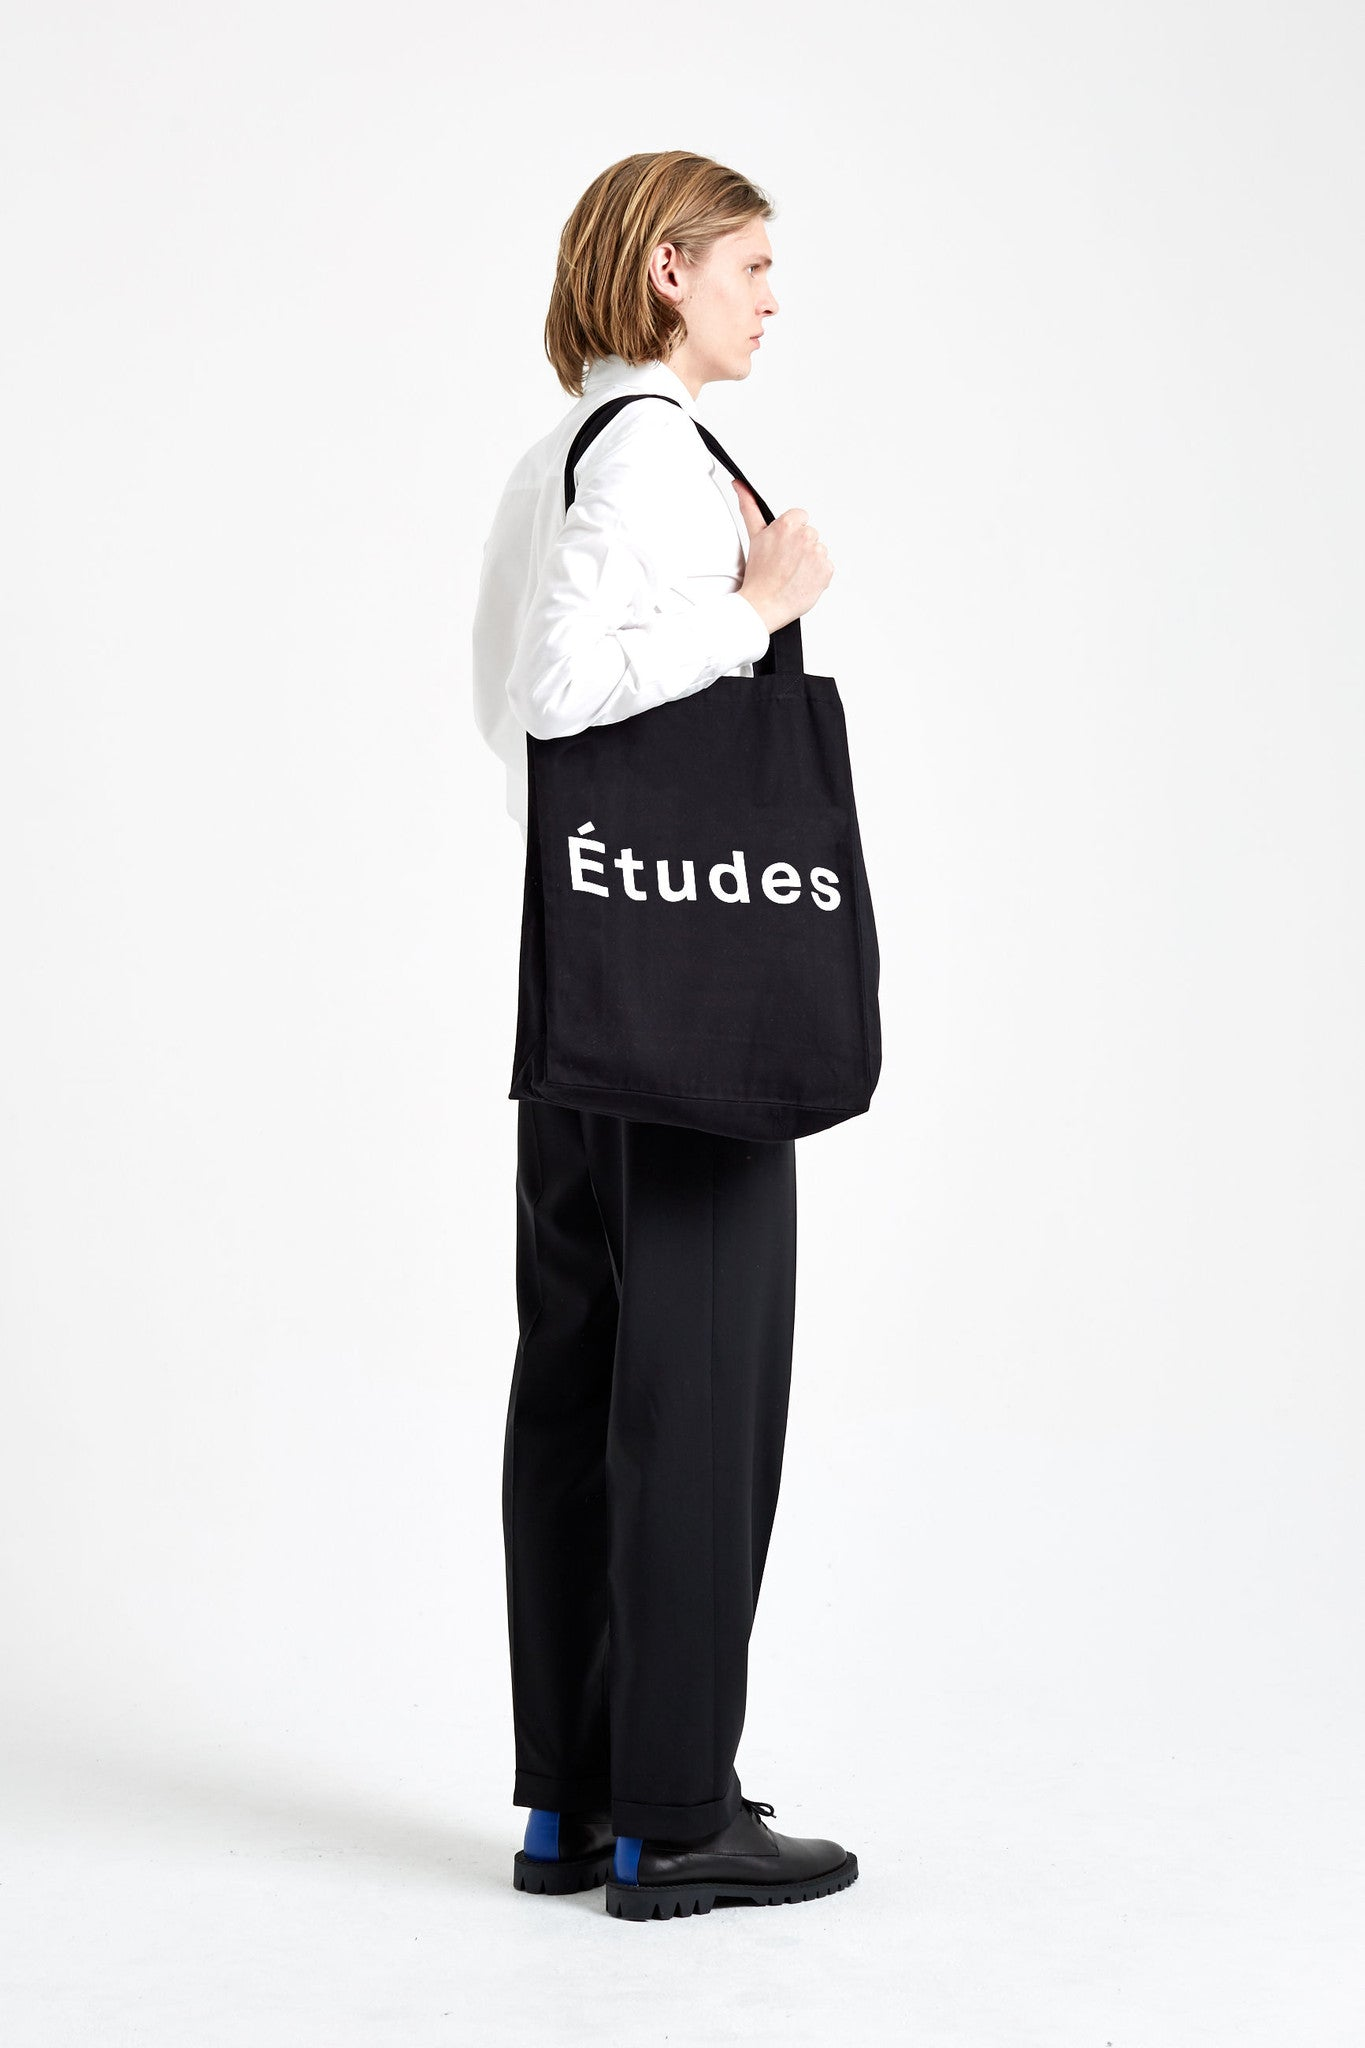 Études Studio - October Bag Black